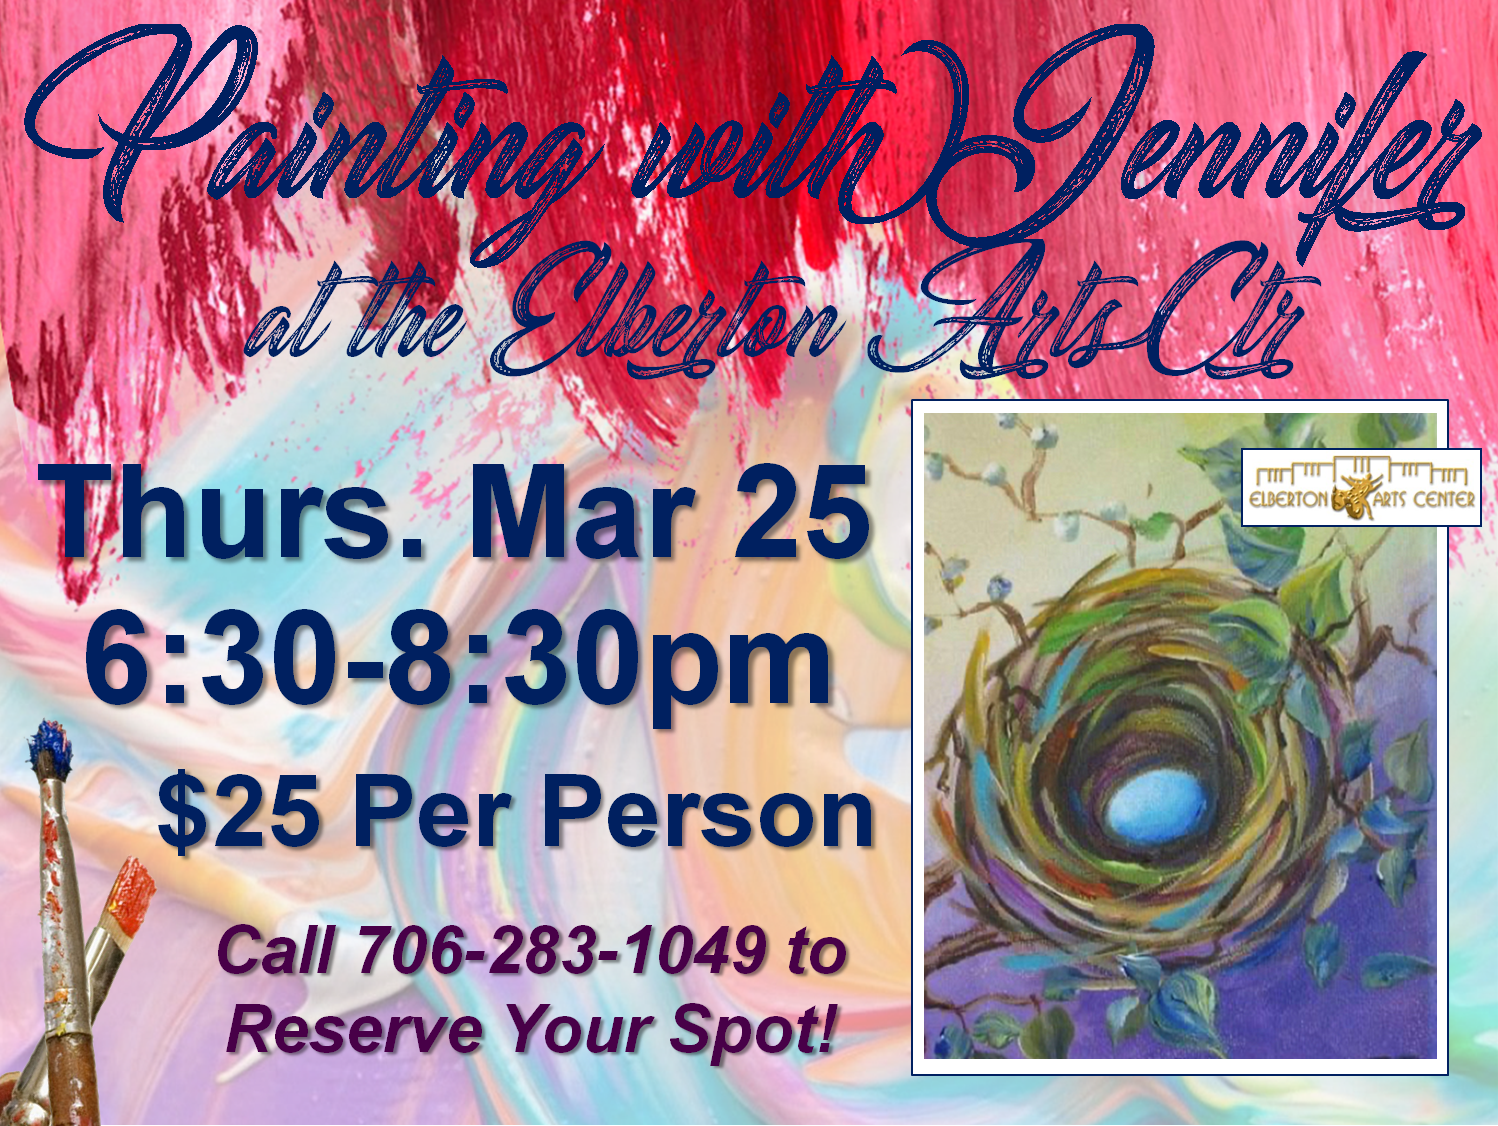 Painting with Jennifer Thurs Mar 25